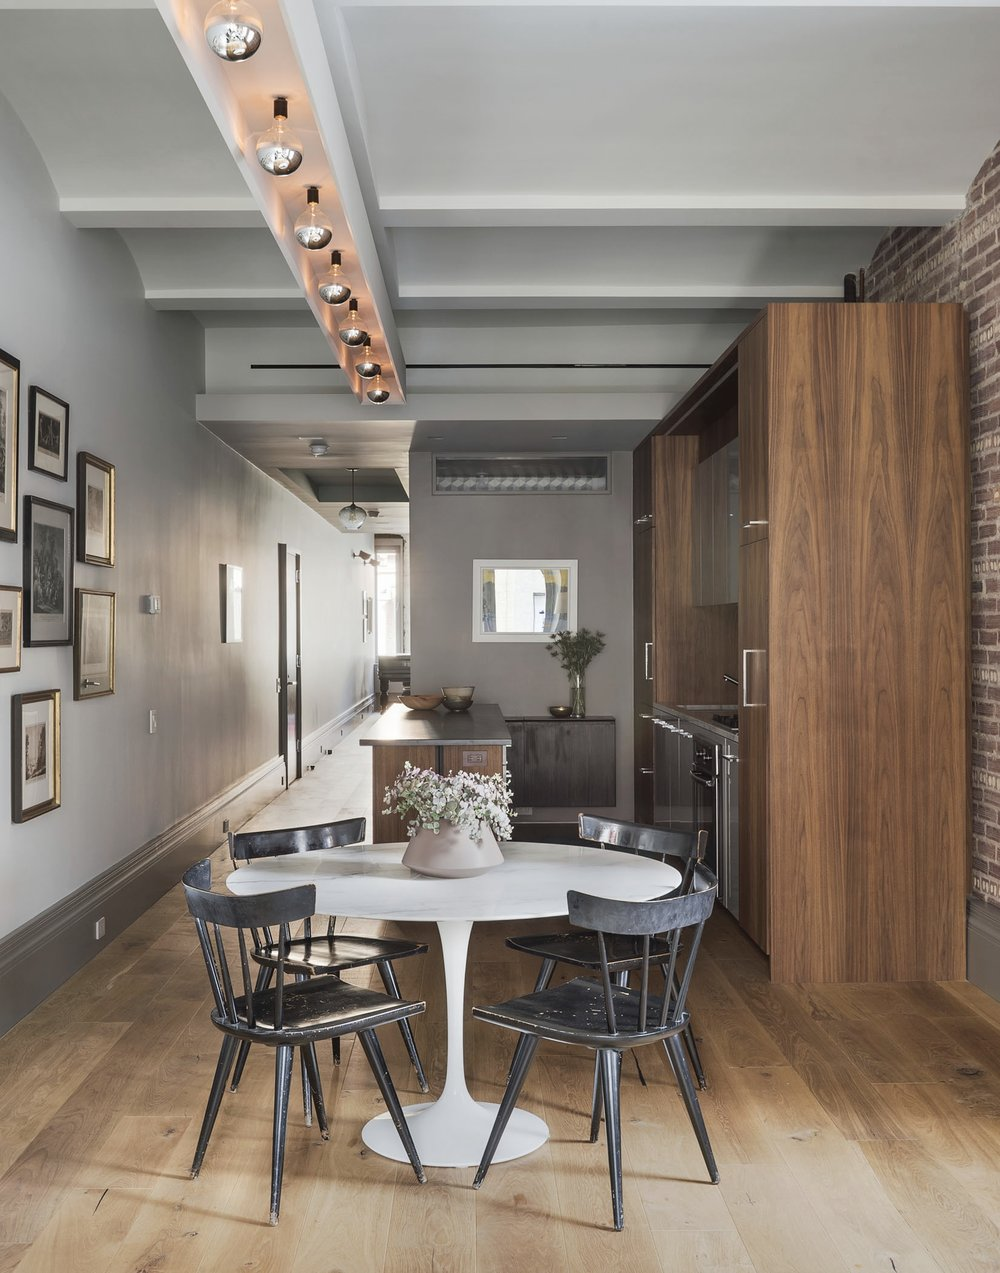 12th Street Loft Kitchen with Table